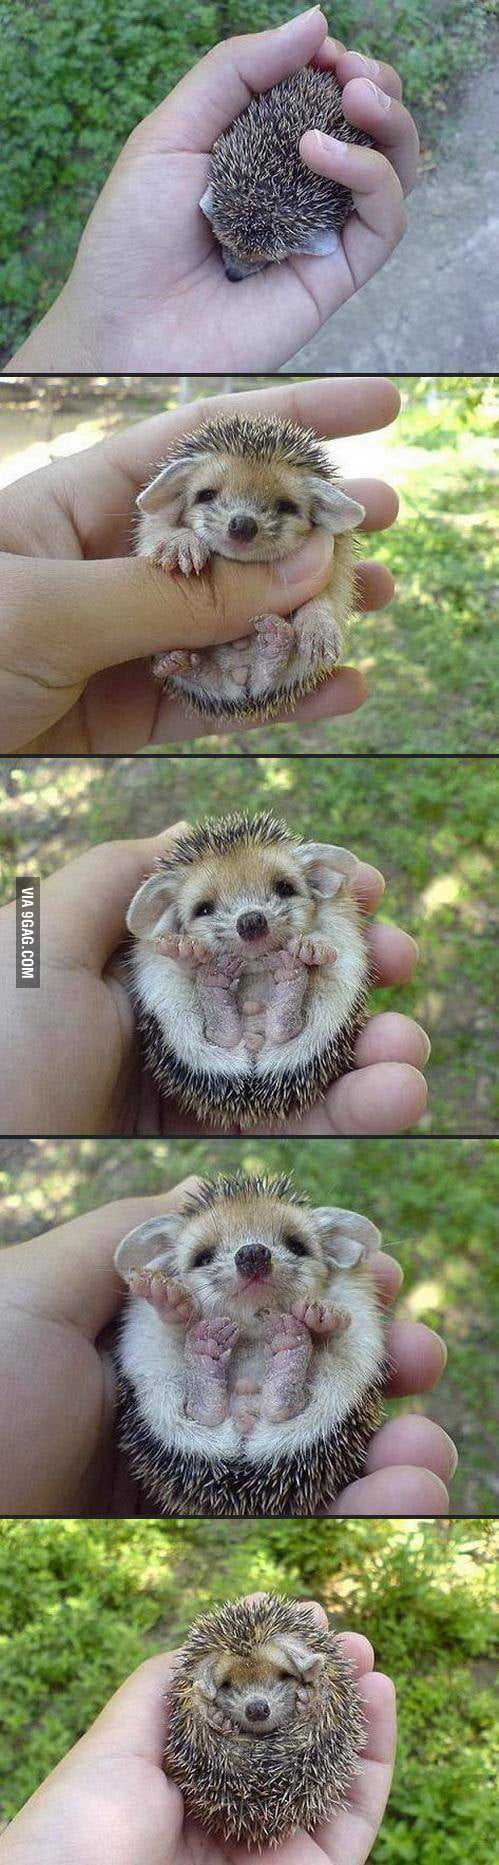 A baby hedgehog